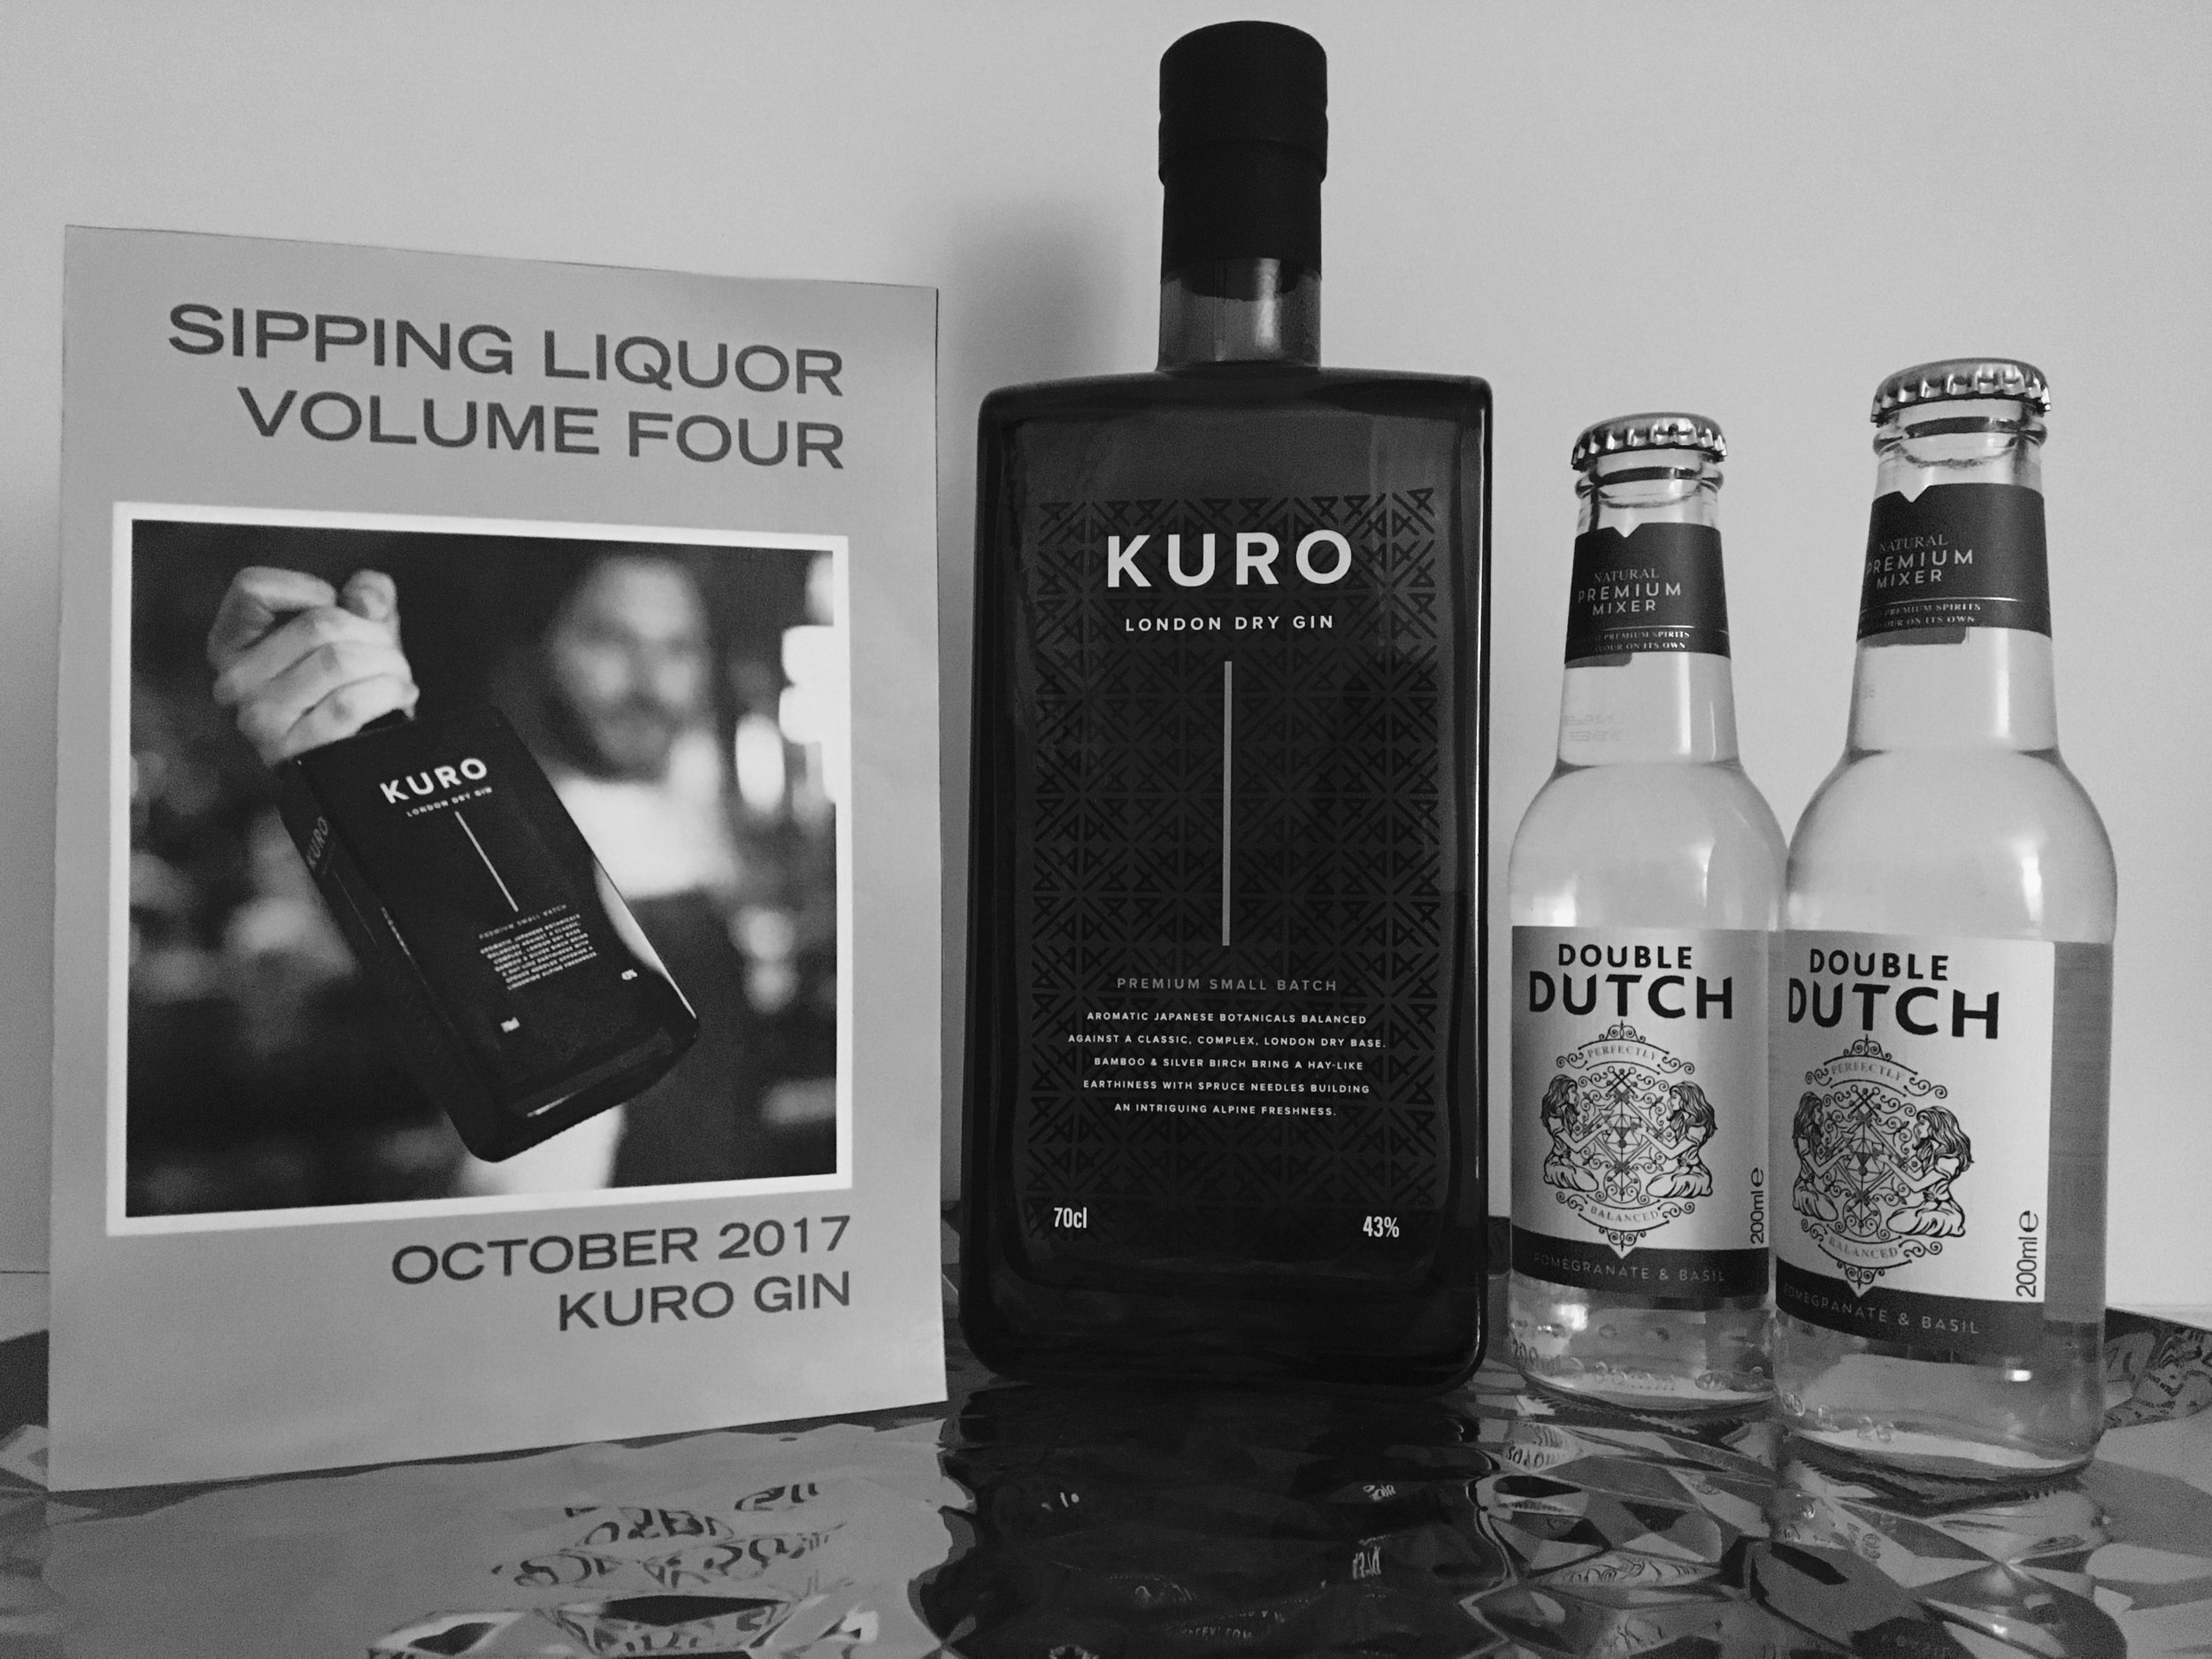 Sipping Liquor box with Kuro Gin and Double Dutch Gin